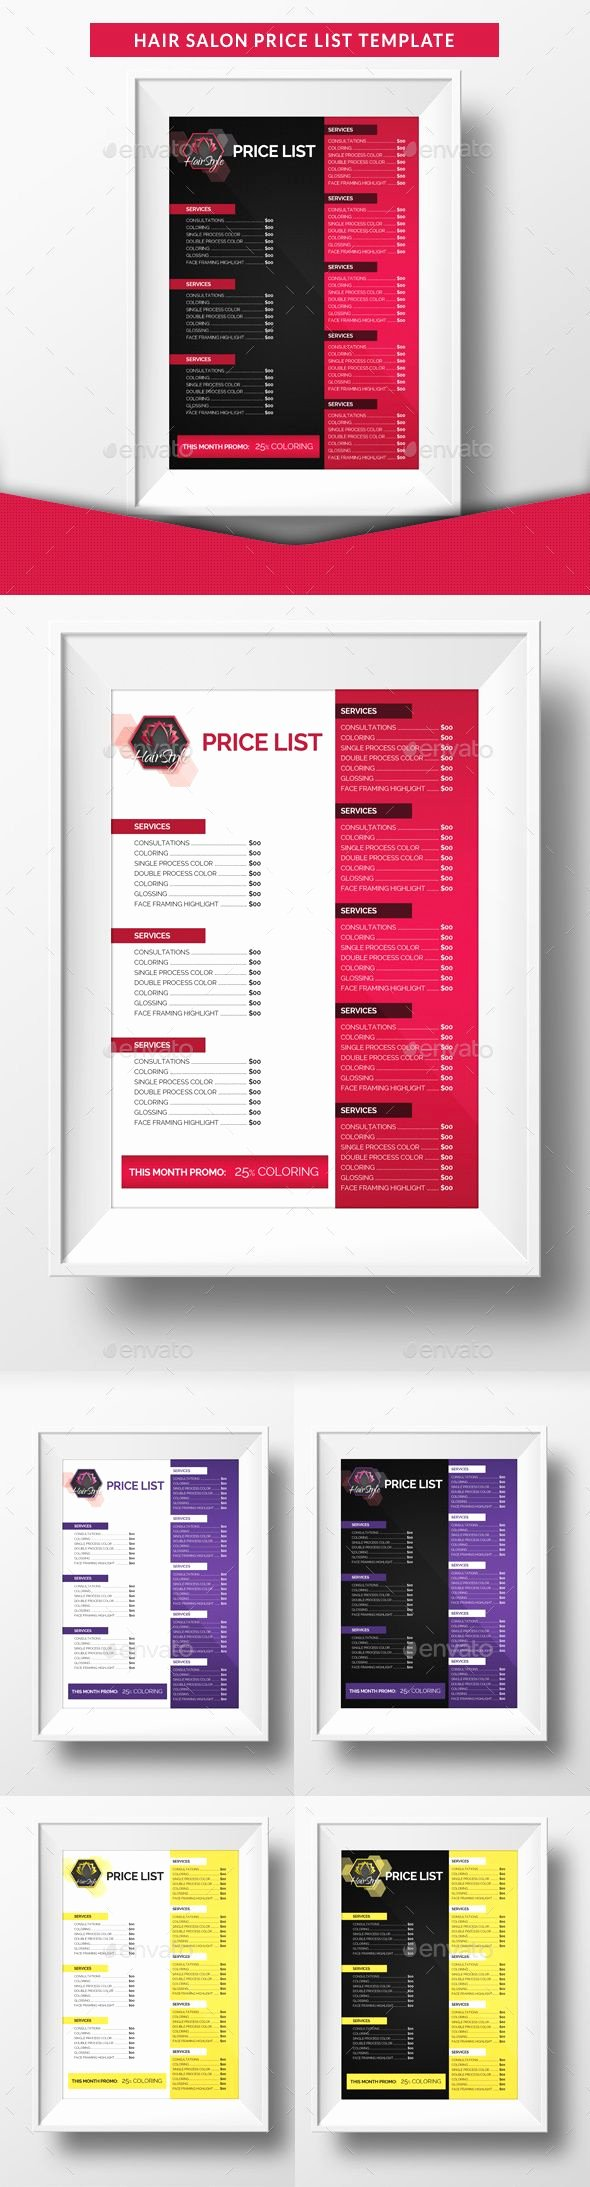 Salon Price List Template Inspirational Pin by Bashooka Web & Graphic Design On Random Design